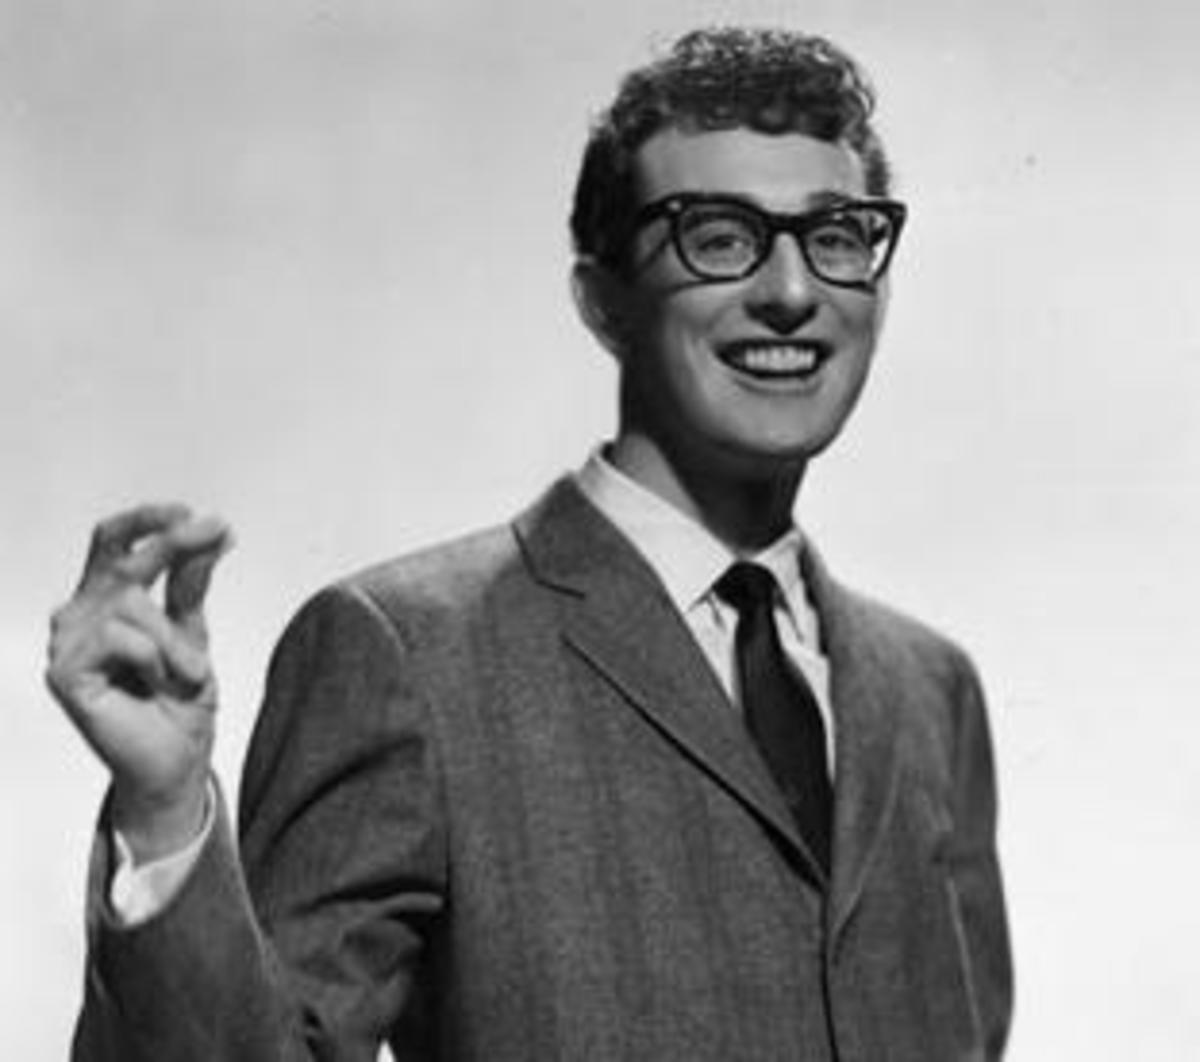 By Buddy_Holly_Brunswick_Records.jpg: Brunswick Records derivative work: GDuwenTell me! [Public domain], via Wikimedia Commons